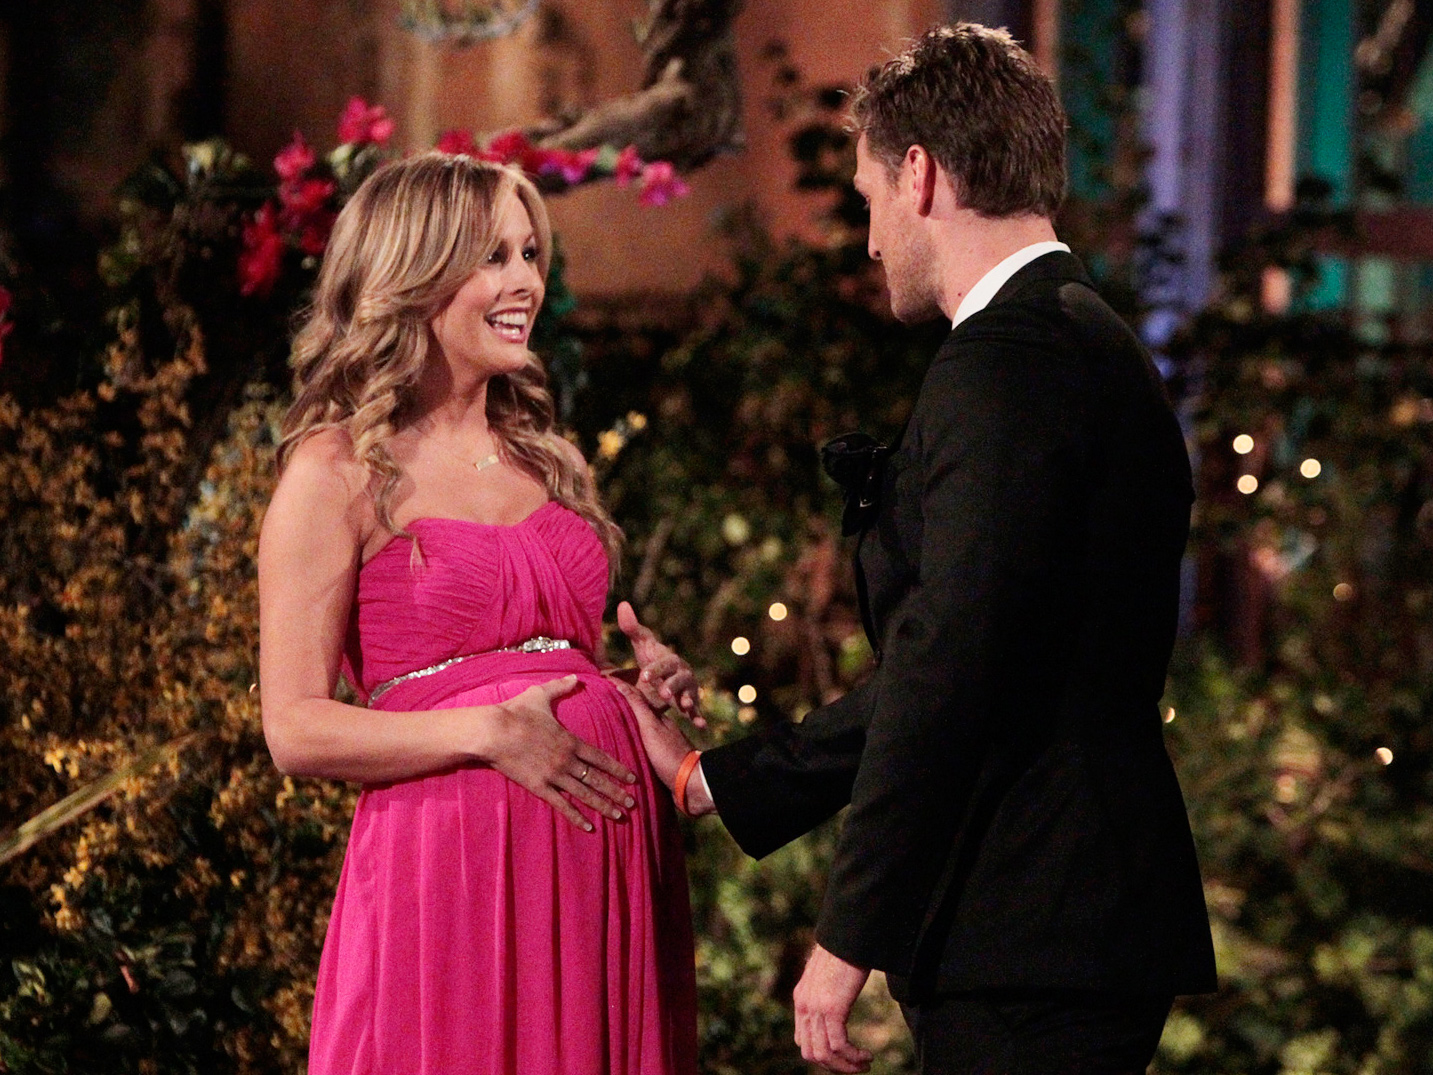 Bachelor Costumes - Embed - 4